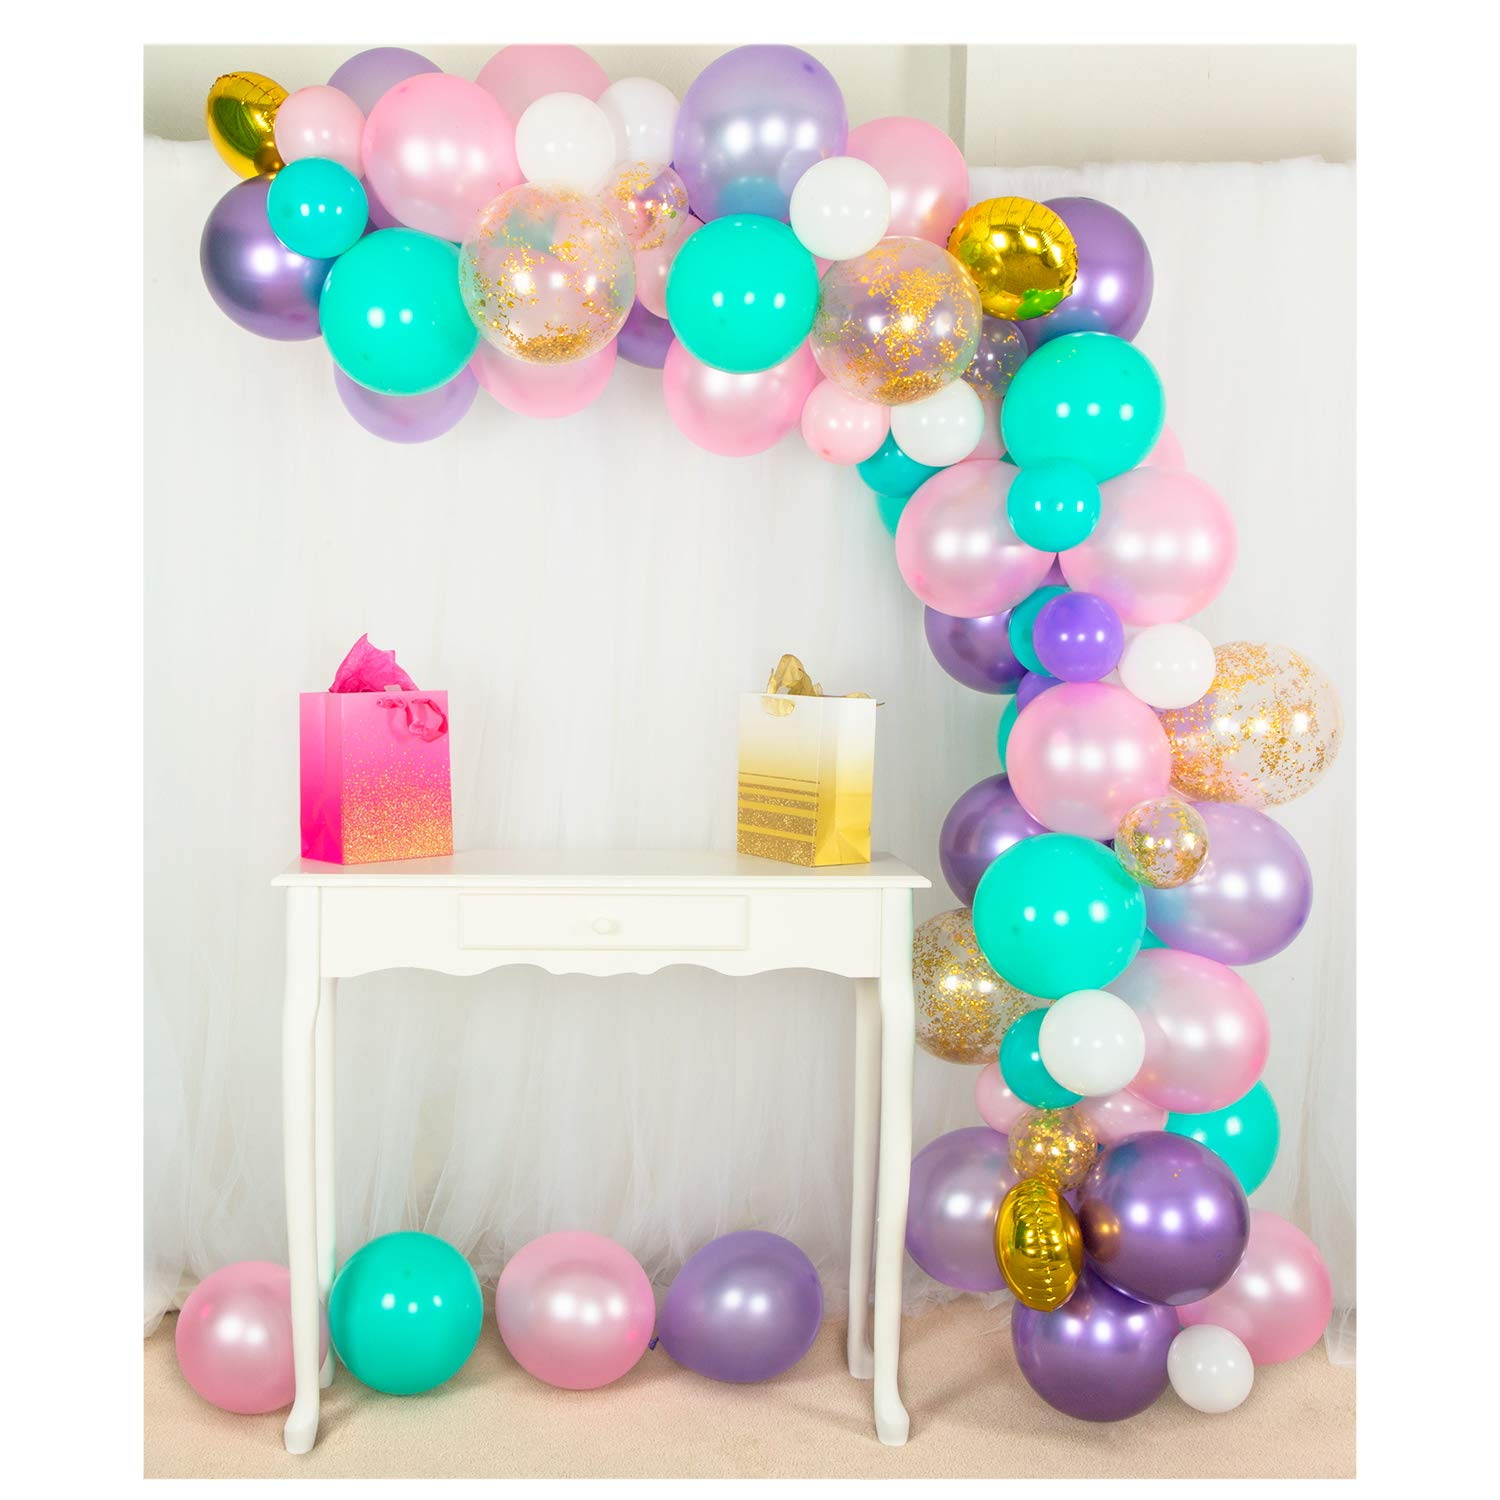 Shimmer and Confetti Premium 85 Pack Mermaid, Unicorn Balloon Arch and Garland Kit – Gold Confetti, Strip. Pearl and Chrome. Pink, Purple, White, Aqua. Unicorn Party Supplies for Birthdays & Baby Showers